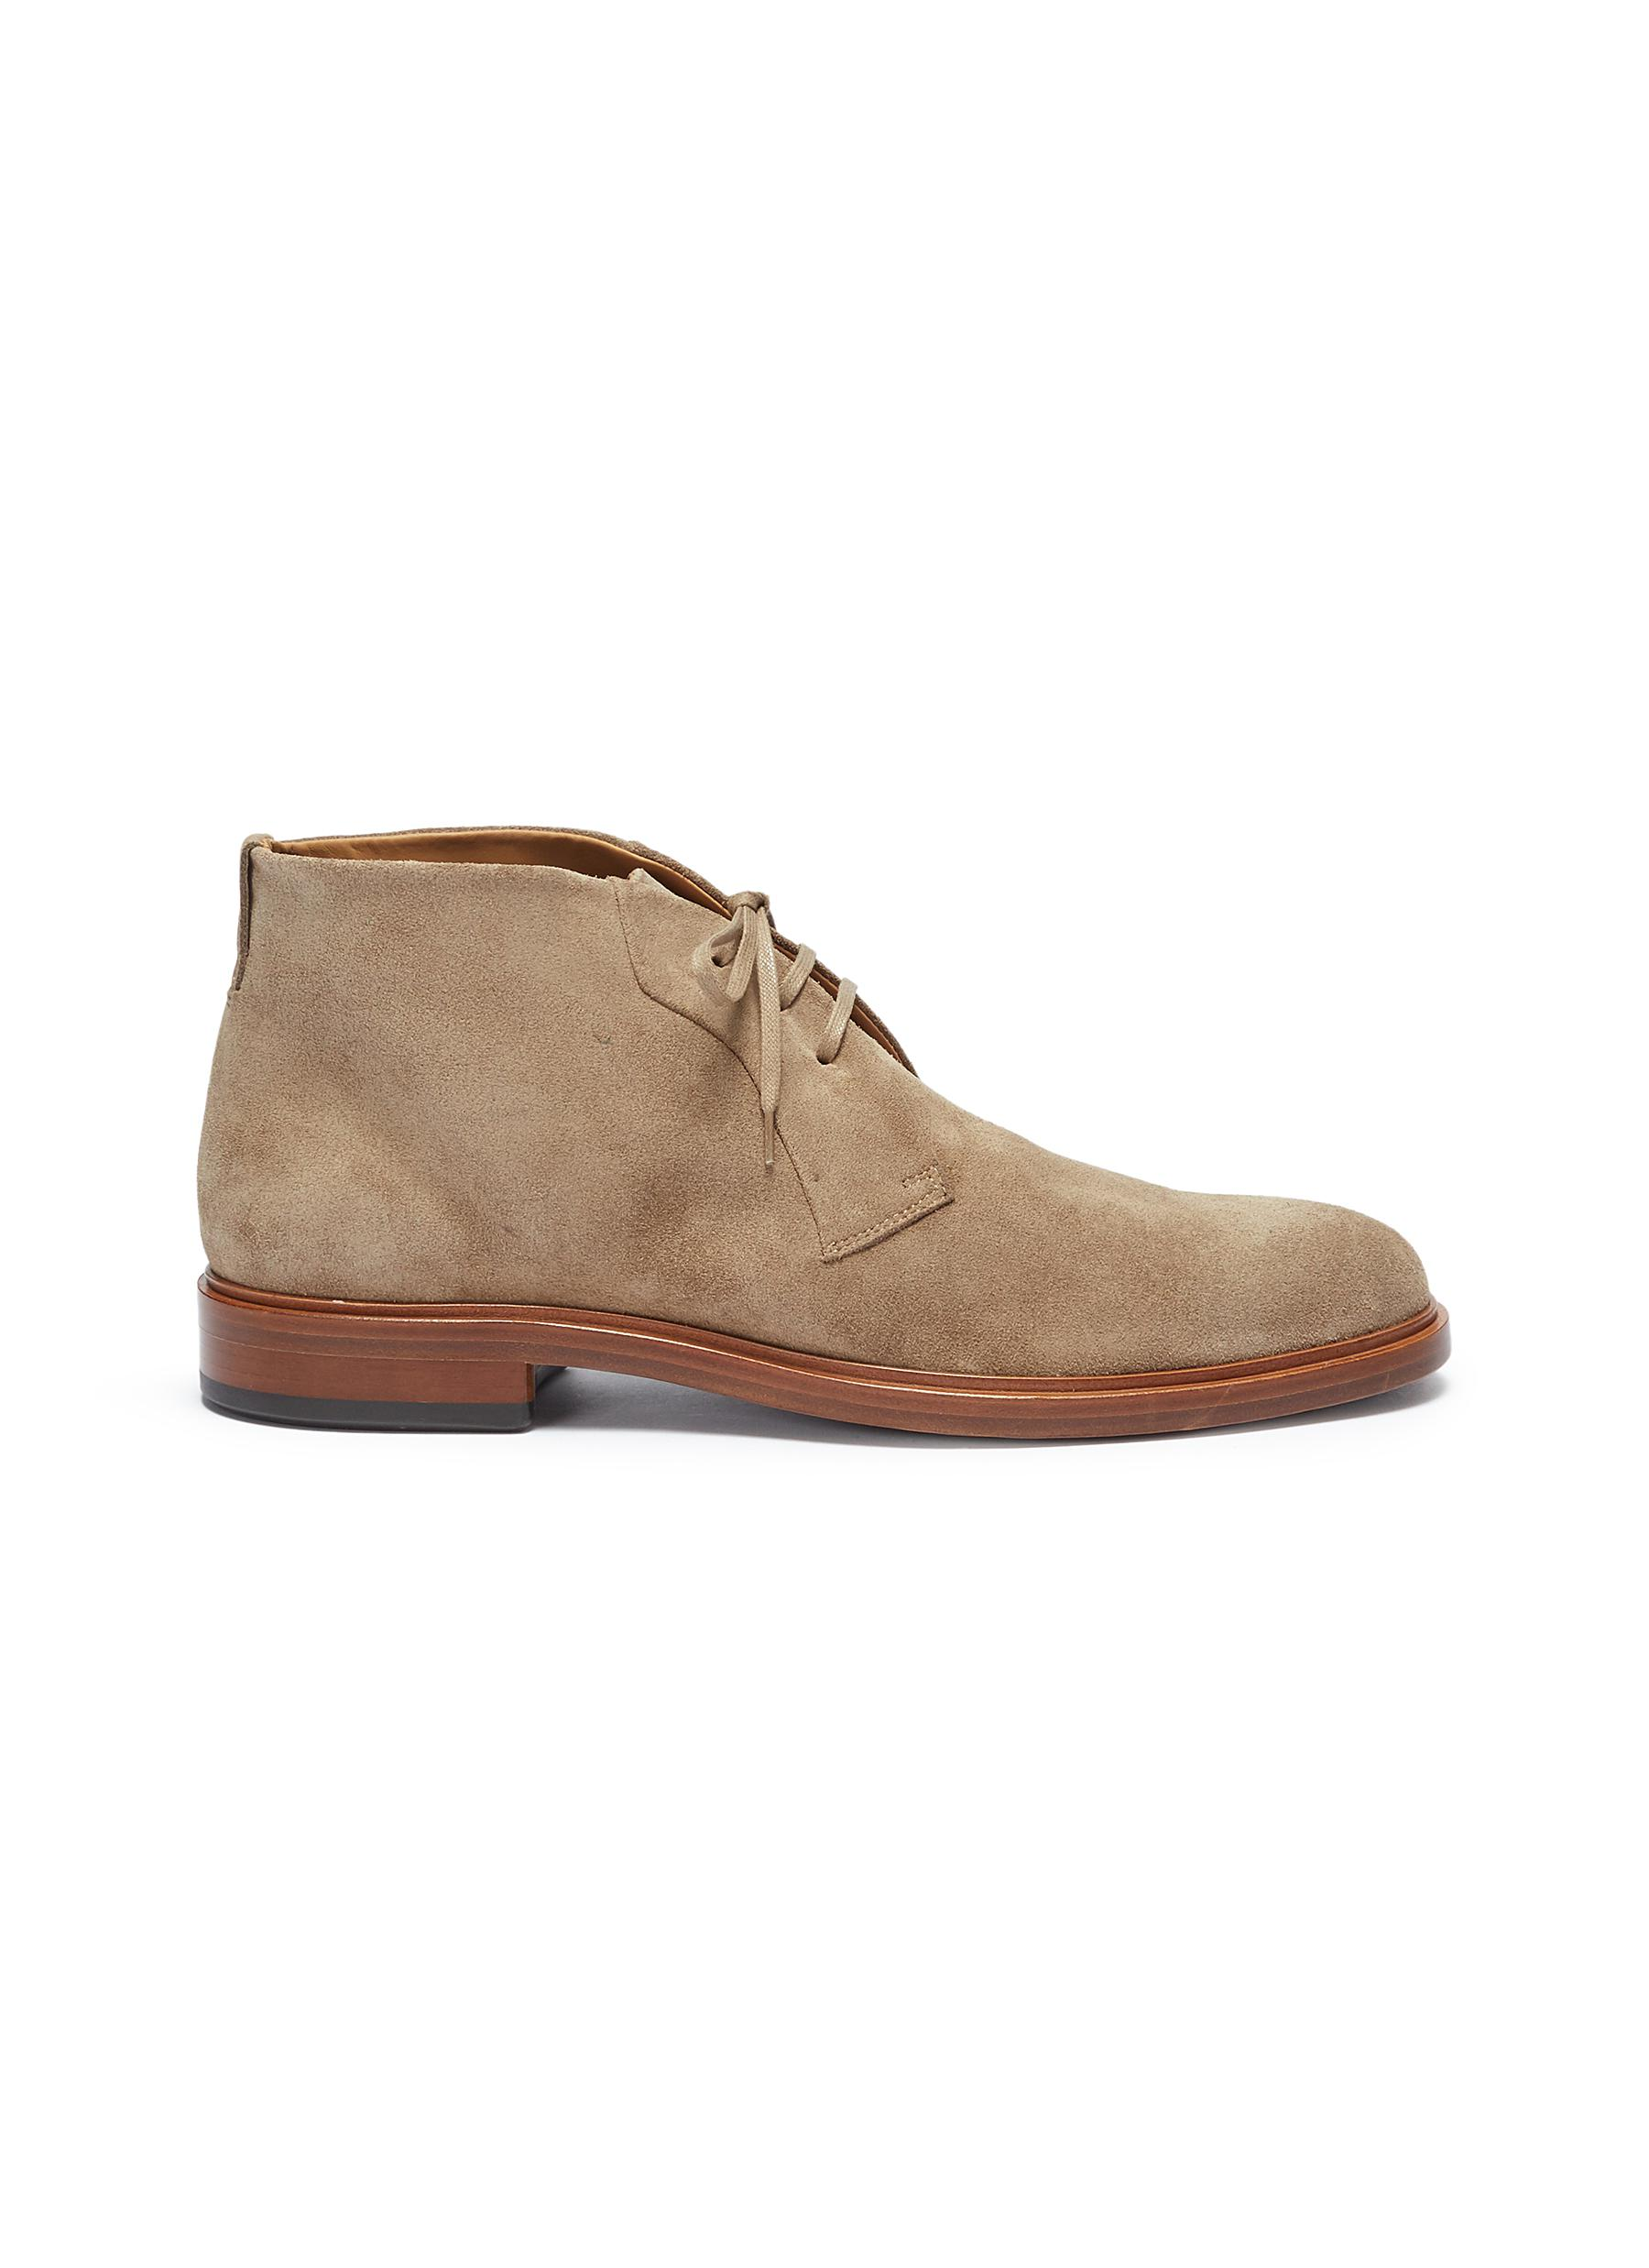 Brunswick suede Chukka boots by Vince